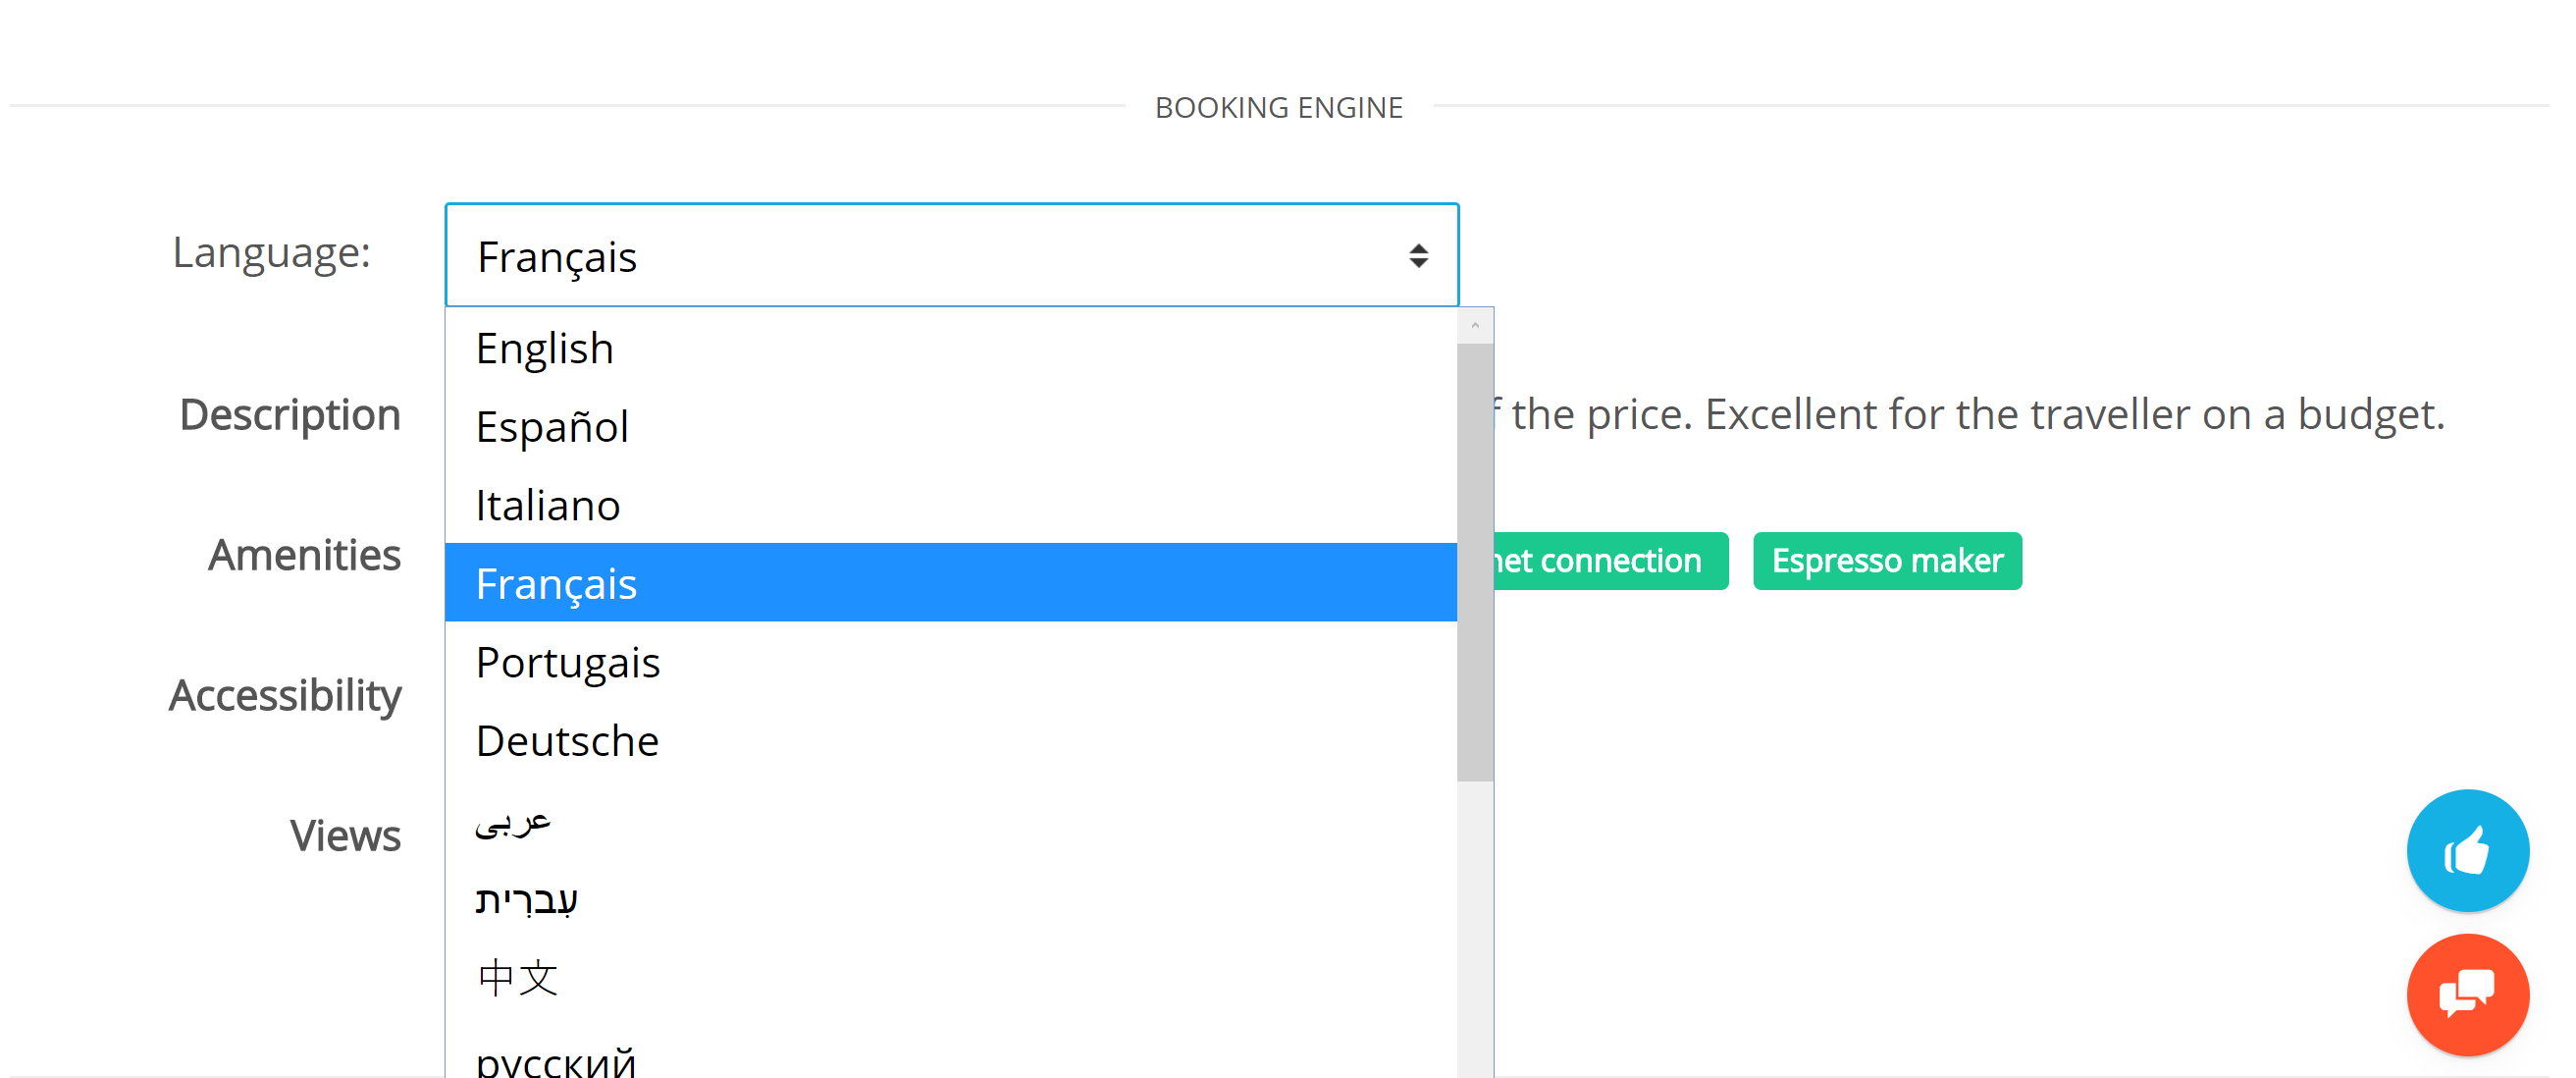 Multi-lingual Booking Engine              Your booking engine now works in 21 languages, including Greek, Hebrew, and Hindi. You can localize the description for your rooms, rates, and additional booking engine info for any or all languages. Your booking engine will appear in the natural language for any visitor and will display your localized description, if there is one available.